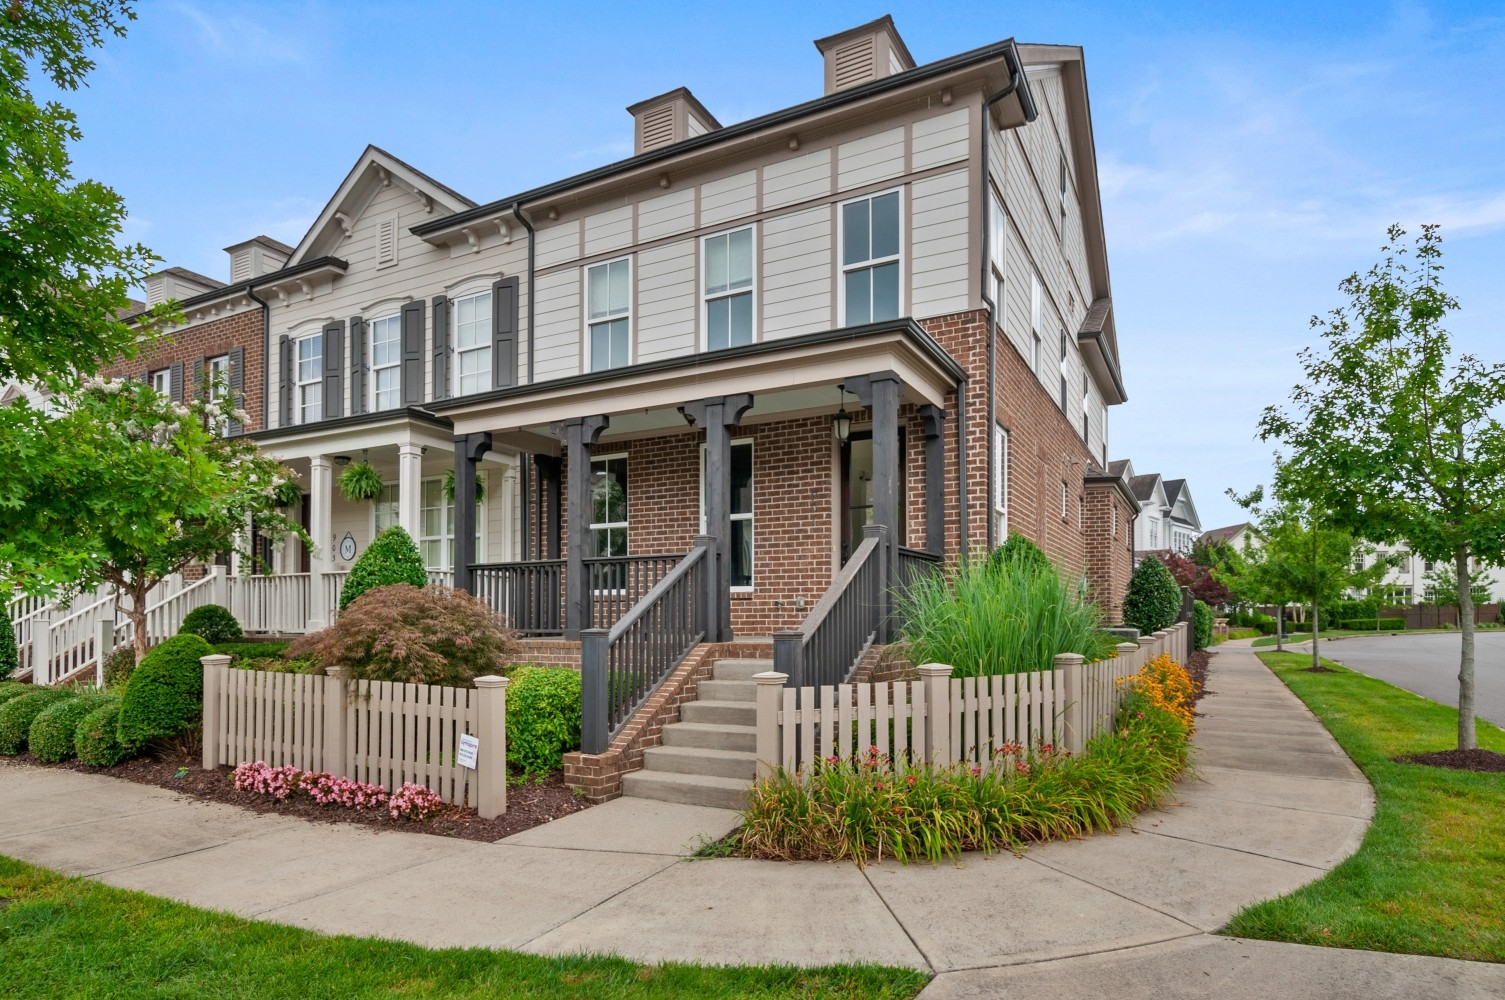 3BR, 3.5BA town home in POPULAR Westhaven development!  END UNIT. Primary BR on the main level (BA has heated tile floor) with 2 BRs up, nice size closets, high ceilings, hardwood floors, granite counter tops.  Nice size private courtyard with patio, one car garage & of course a covered front porch!